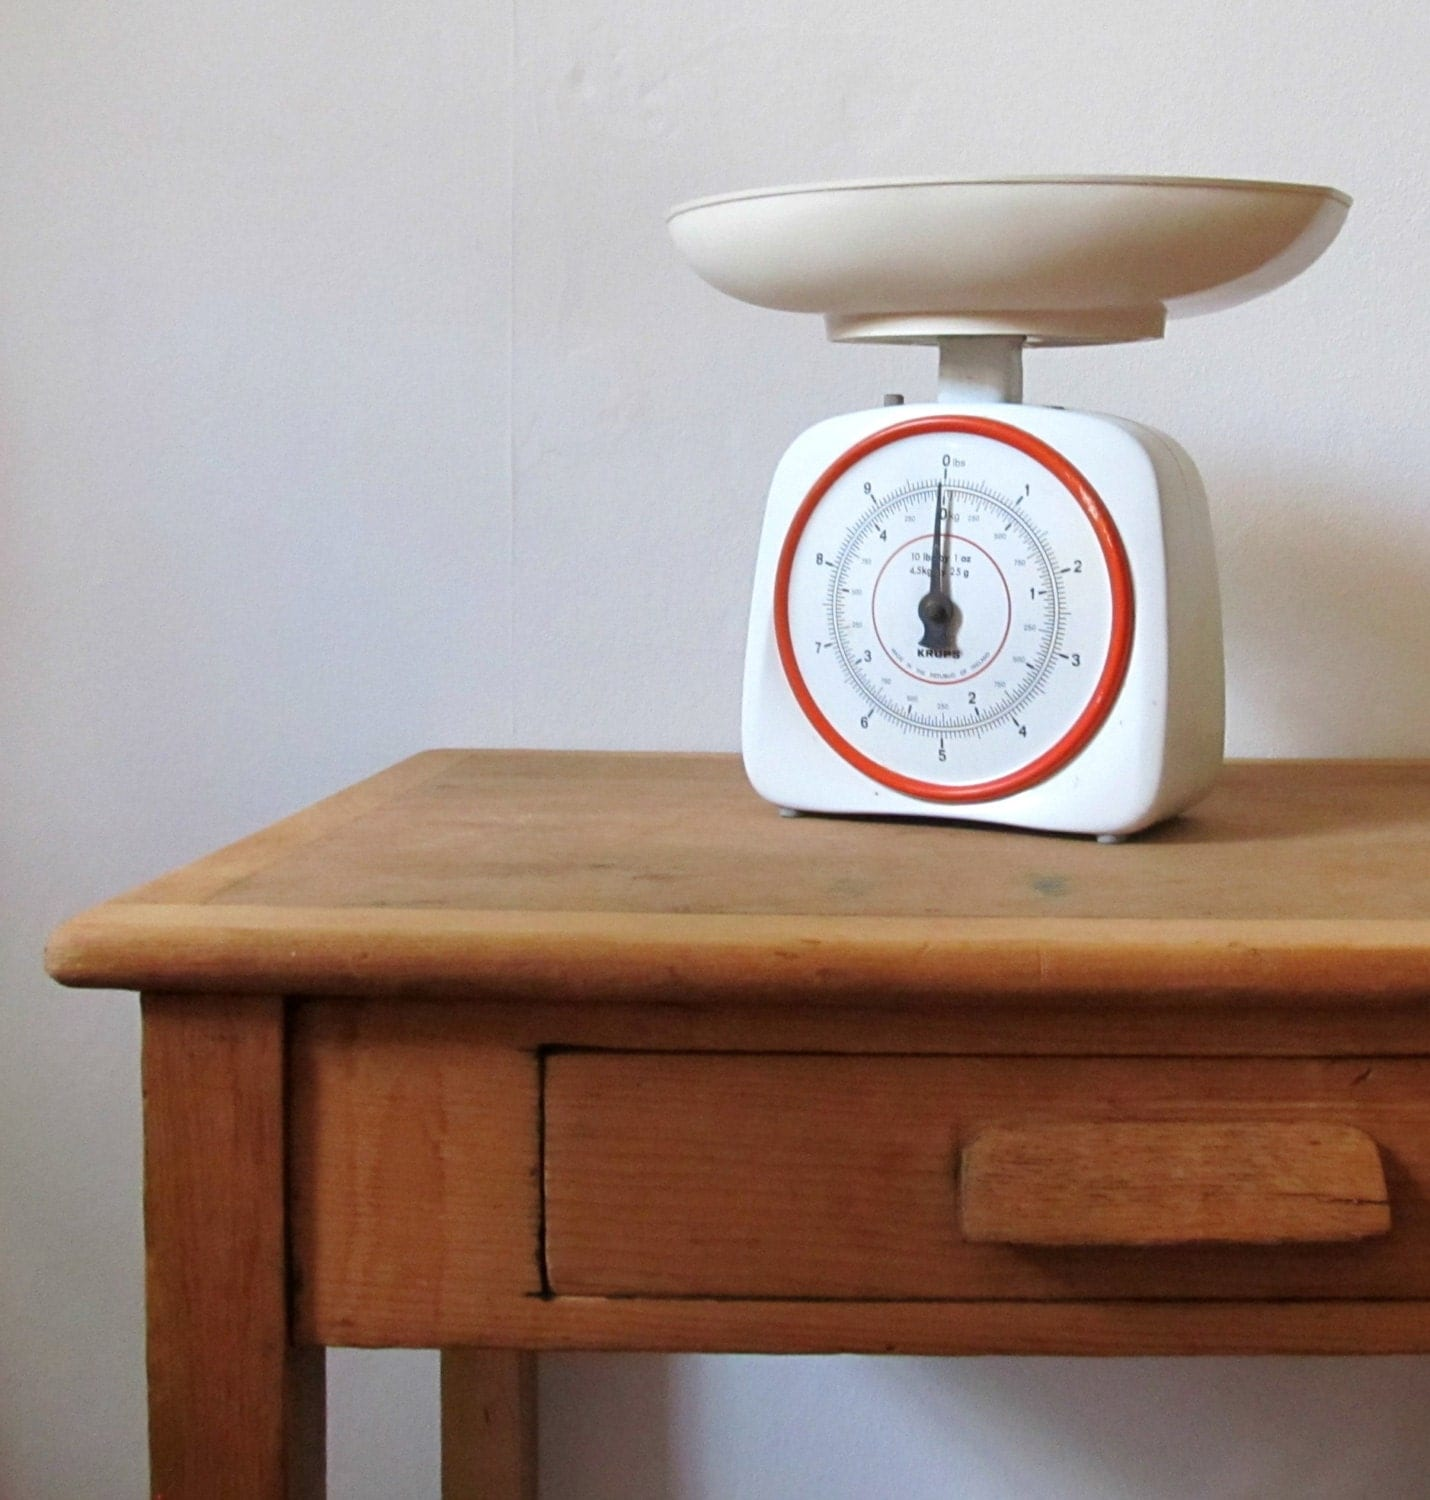 Vintage White And Red Krups Kitchen Scales By GoodsGarb On